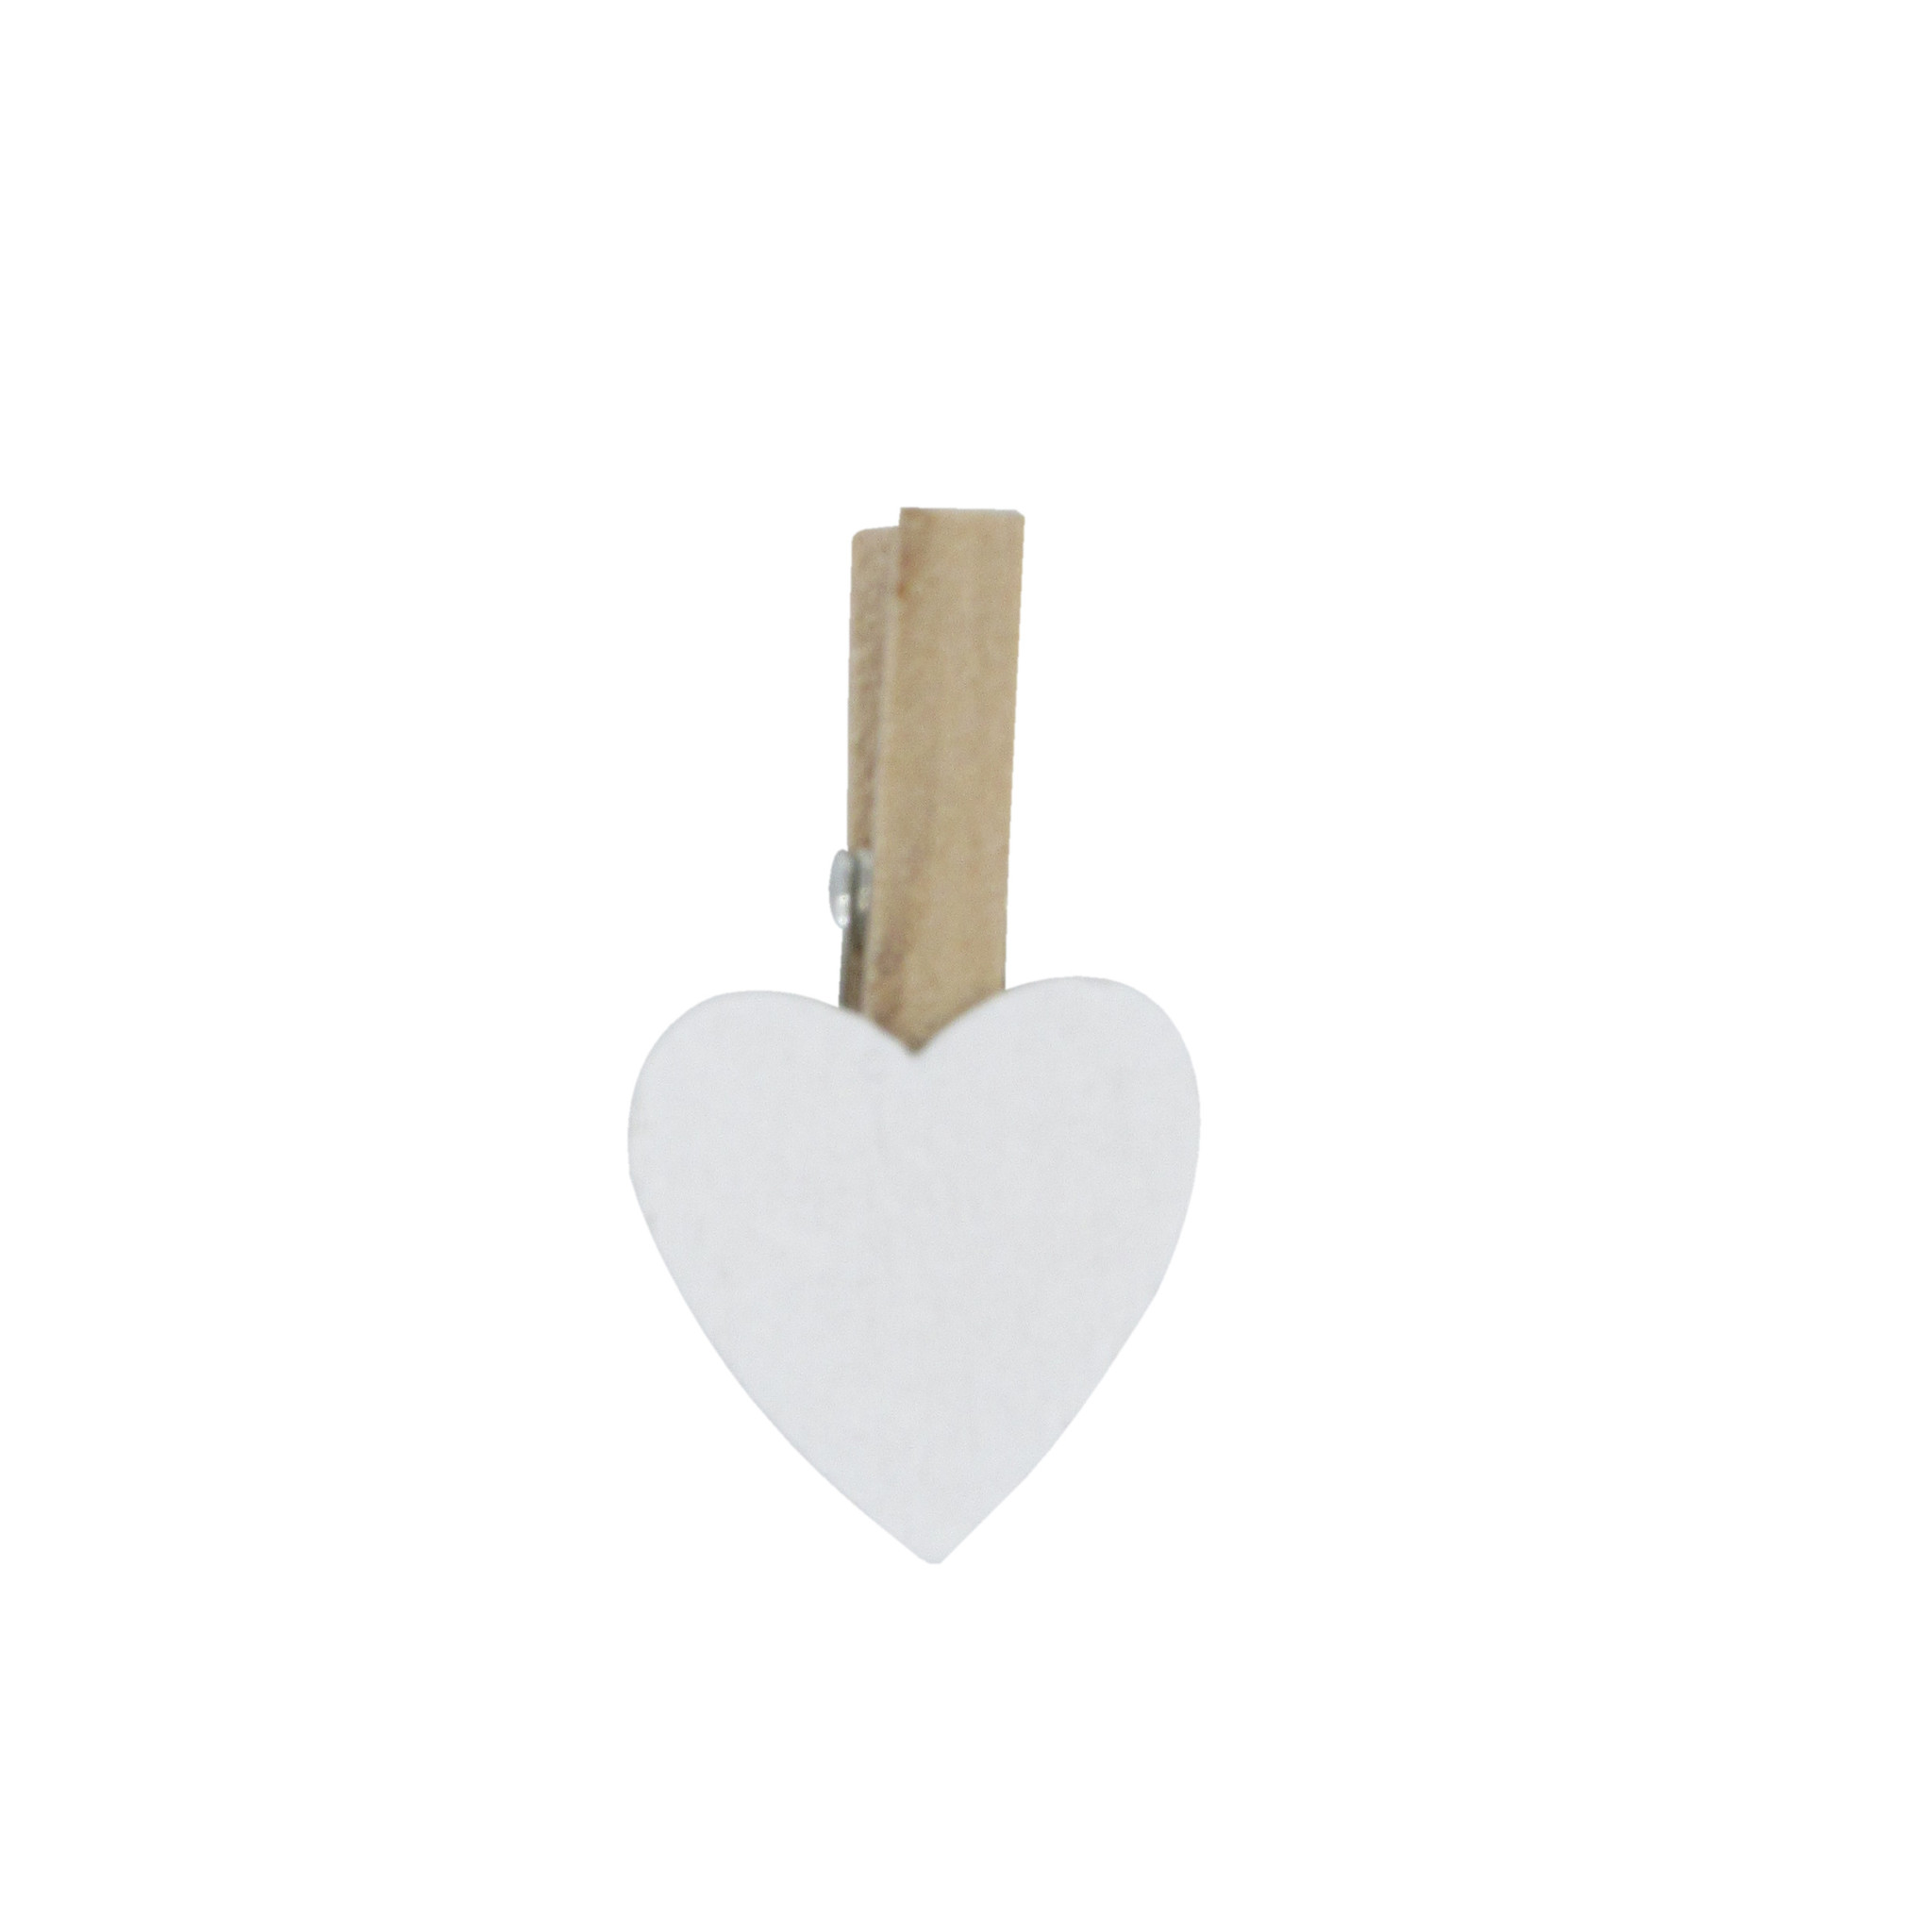 """Wooden clip """"Small Heart"""" - White - 18*18mm - 36 pieces"""